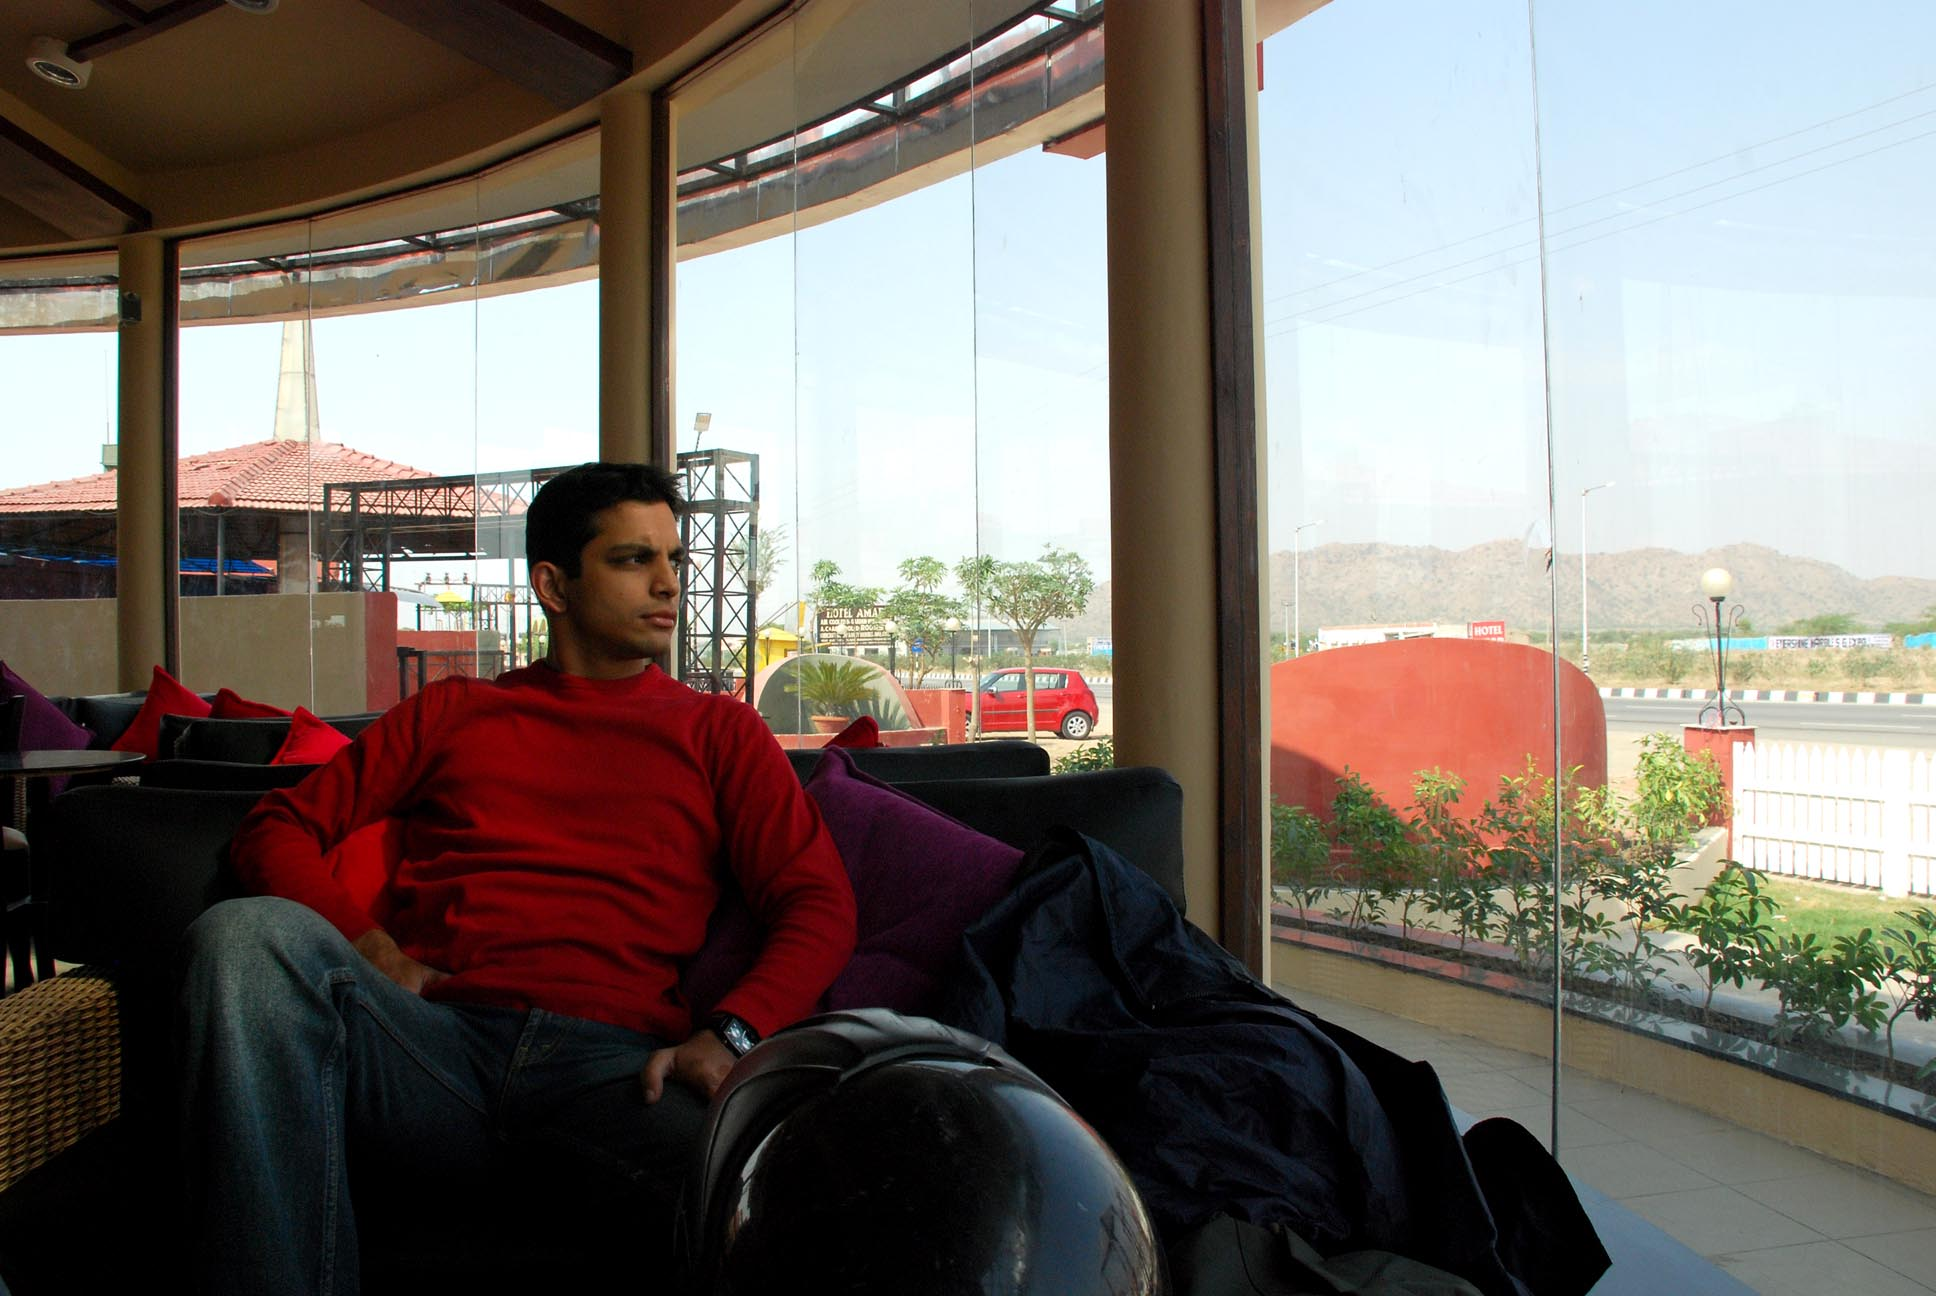 Aamir finally finds 'his kinda place'